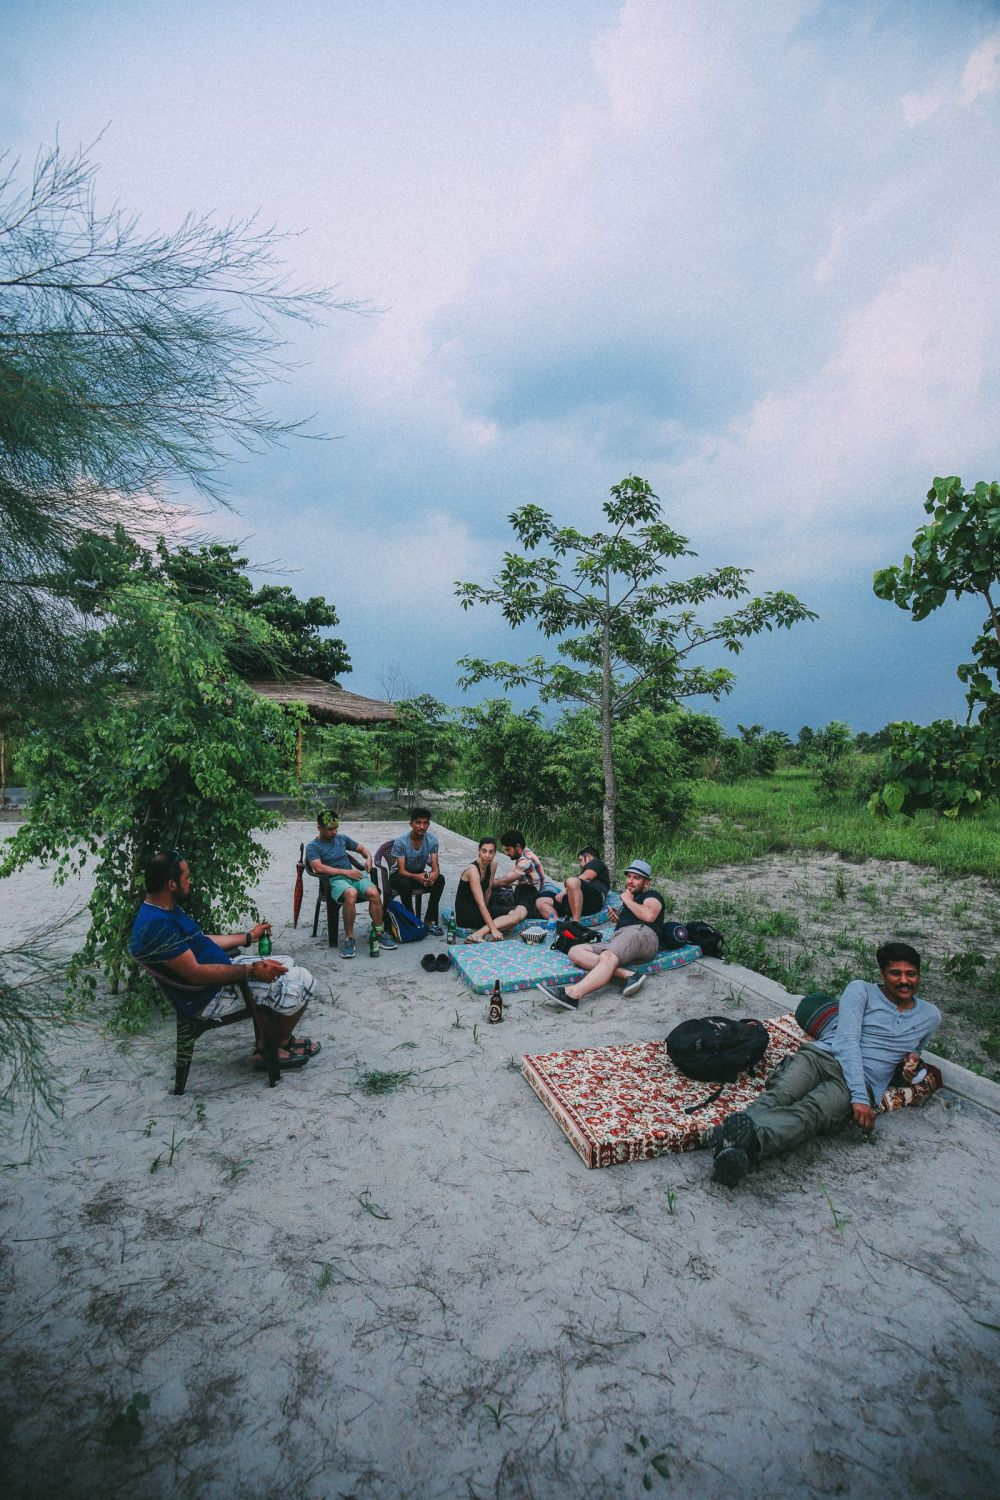 The Sights, Sounds And People Of Chitwan, Nepal (44)